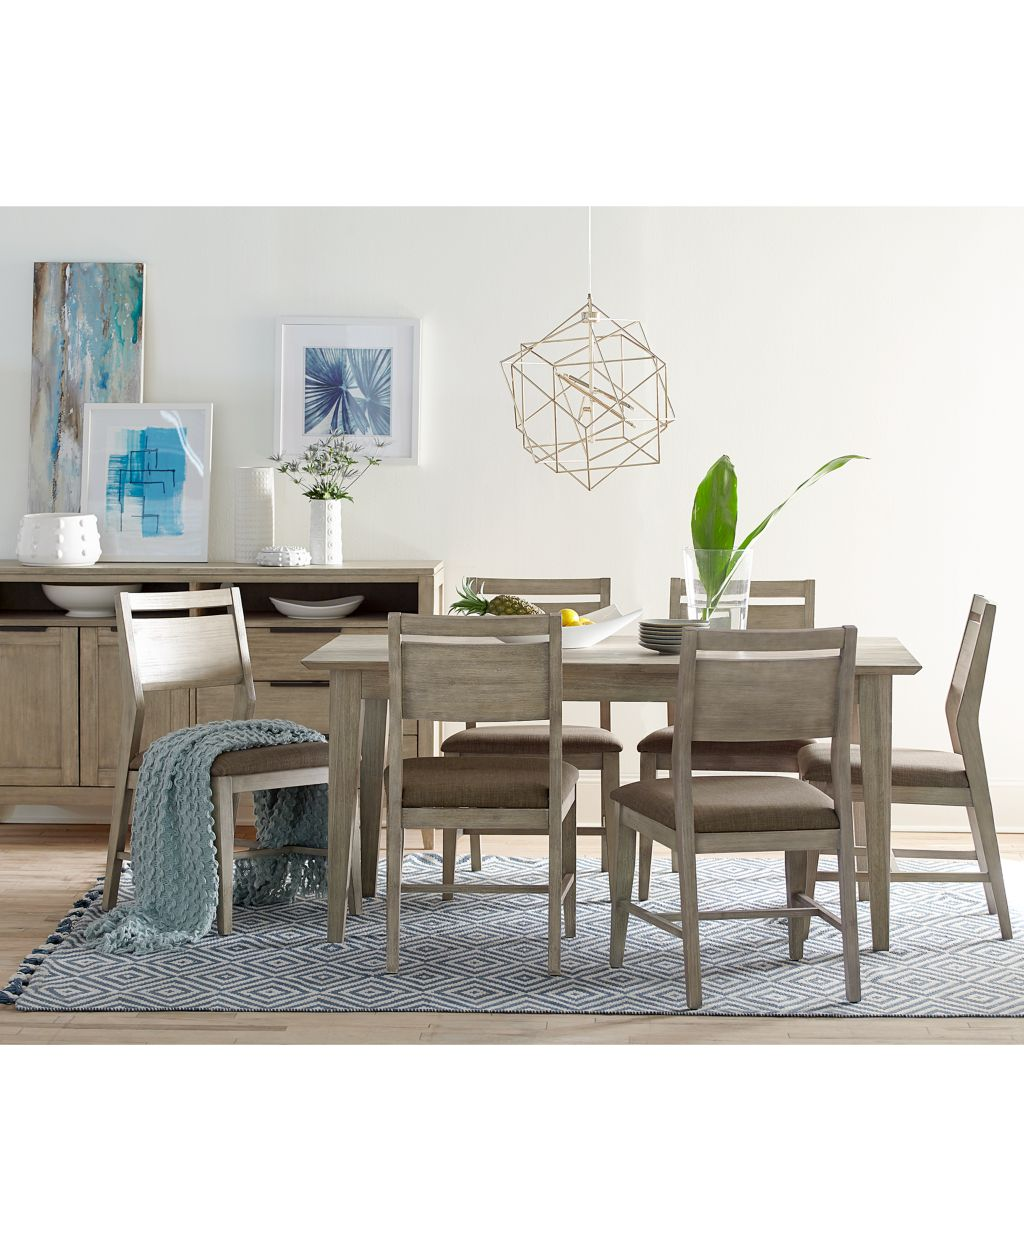 Kips cove dining furniture 7 pc set dining table 6 for Latest dining table set